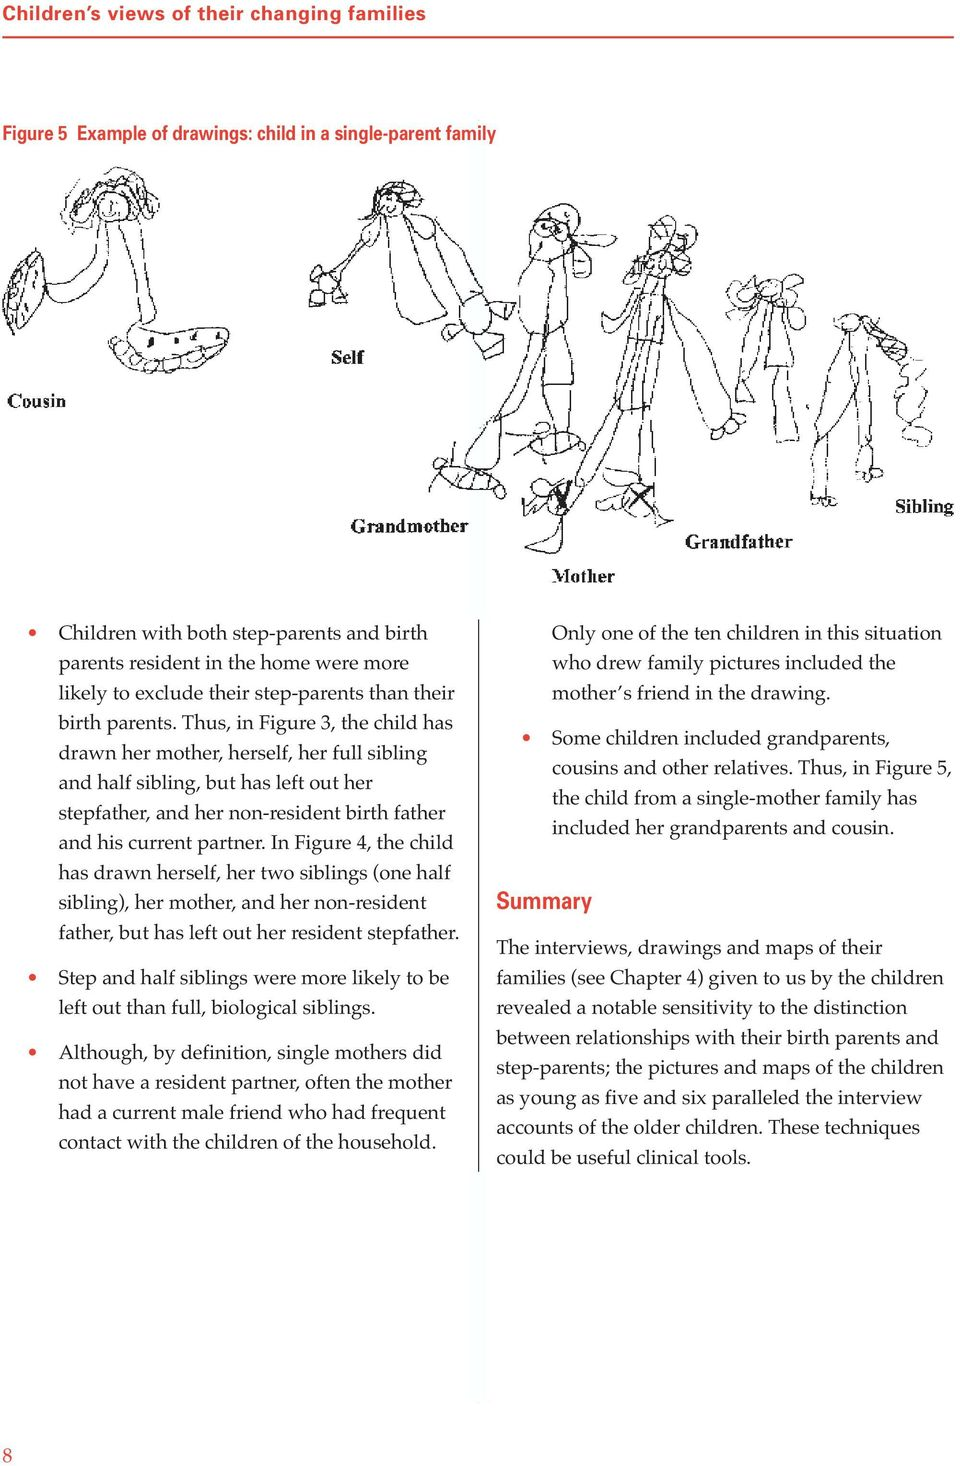 Thus, in Figure 3, the child has drawn her mother, herself, her full sibling and half sibling, but has left out her stepfather, and her non-resident birth father and his current partner.